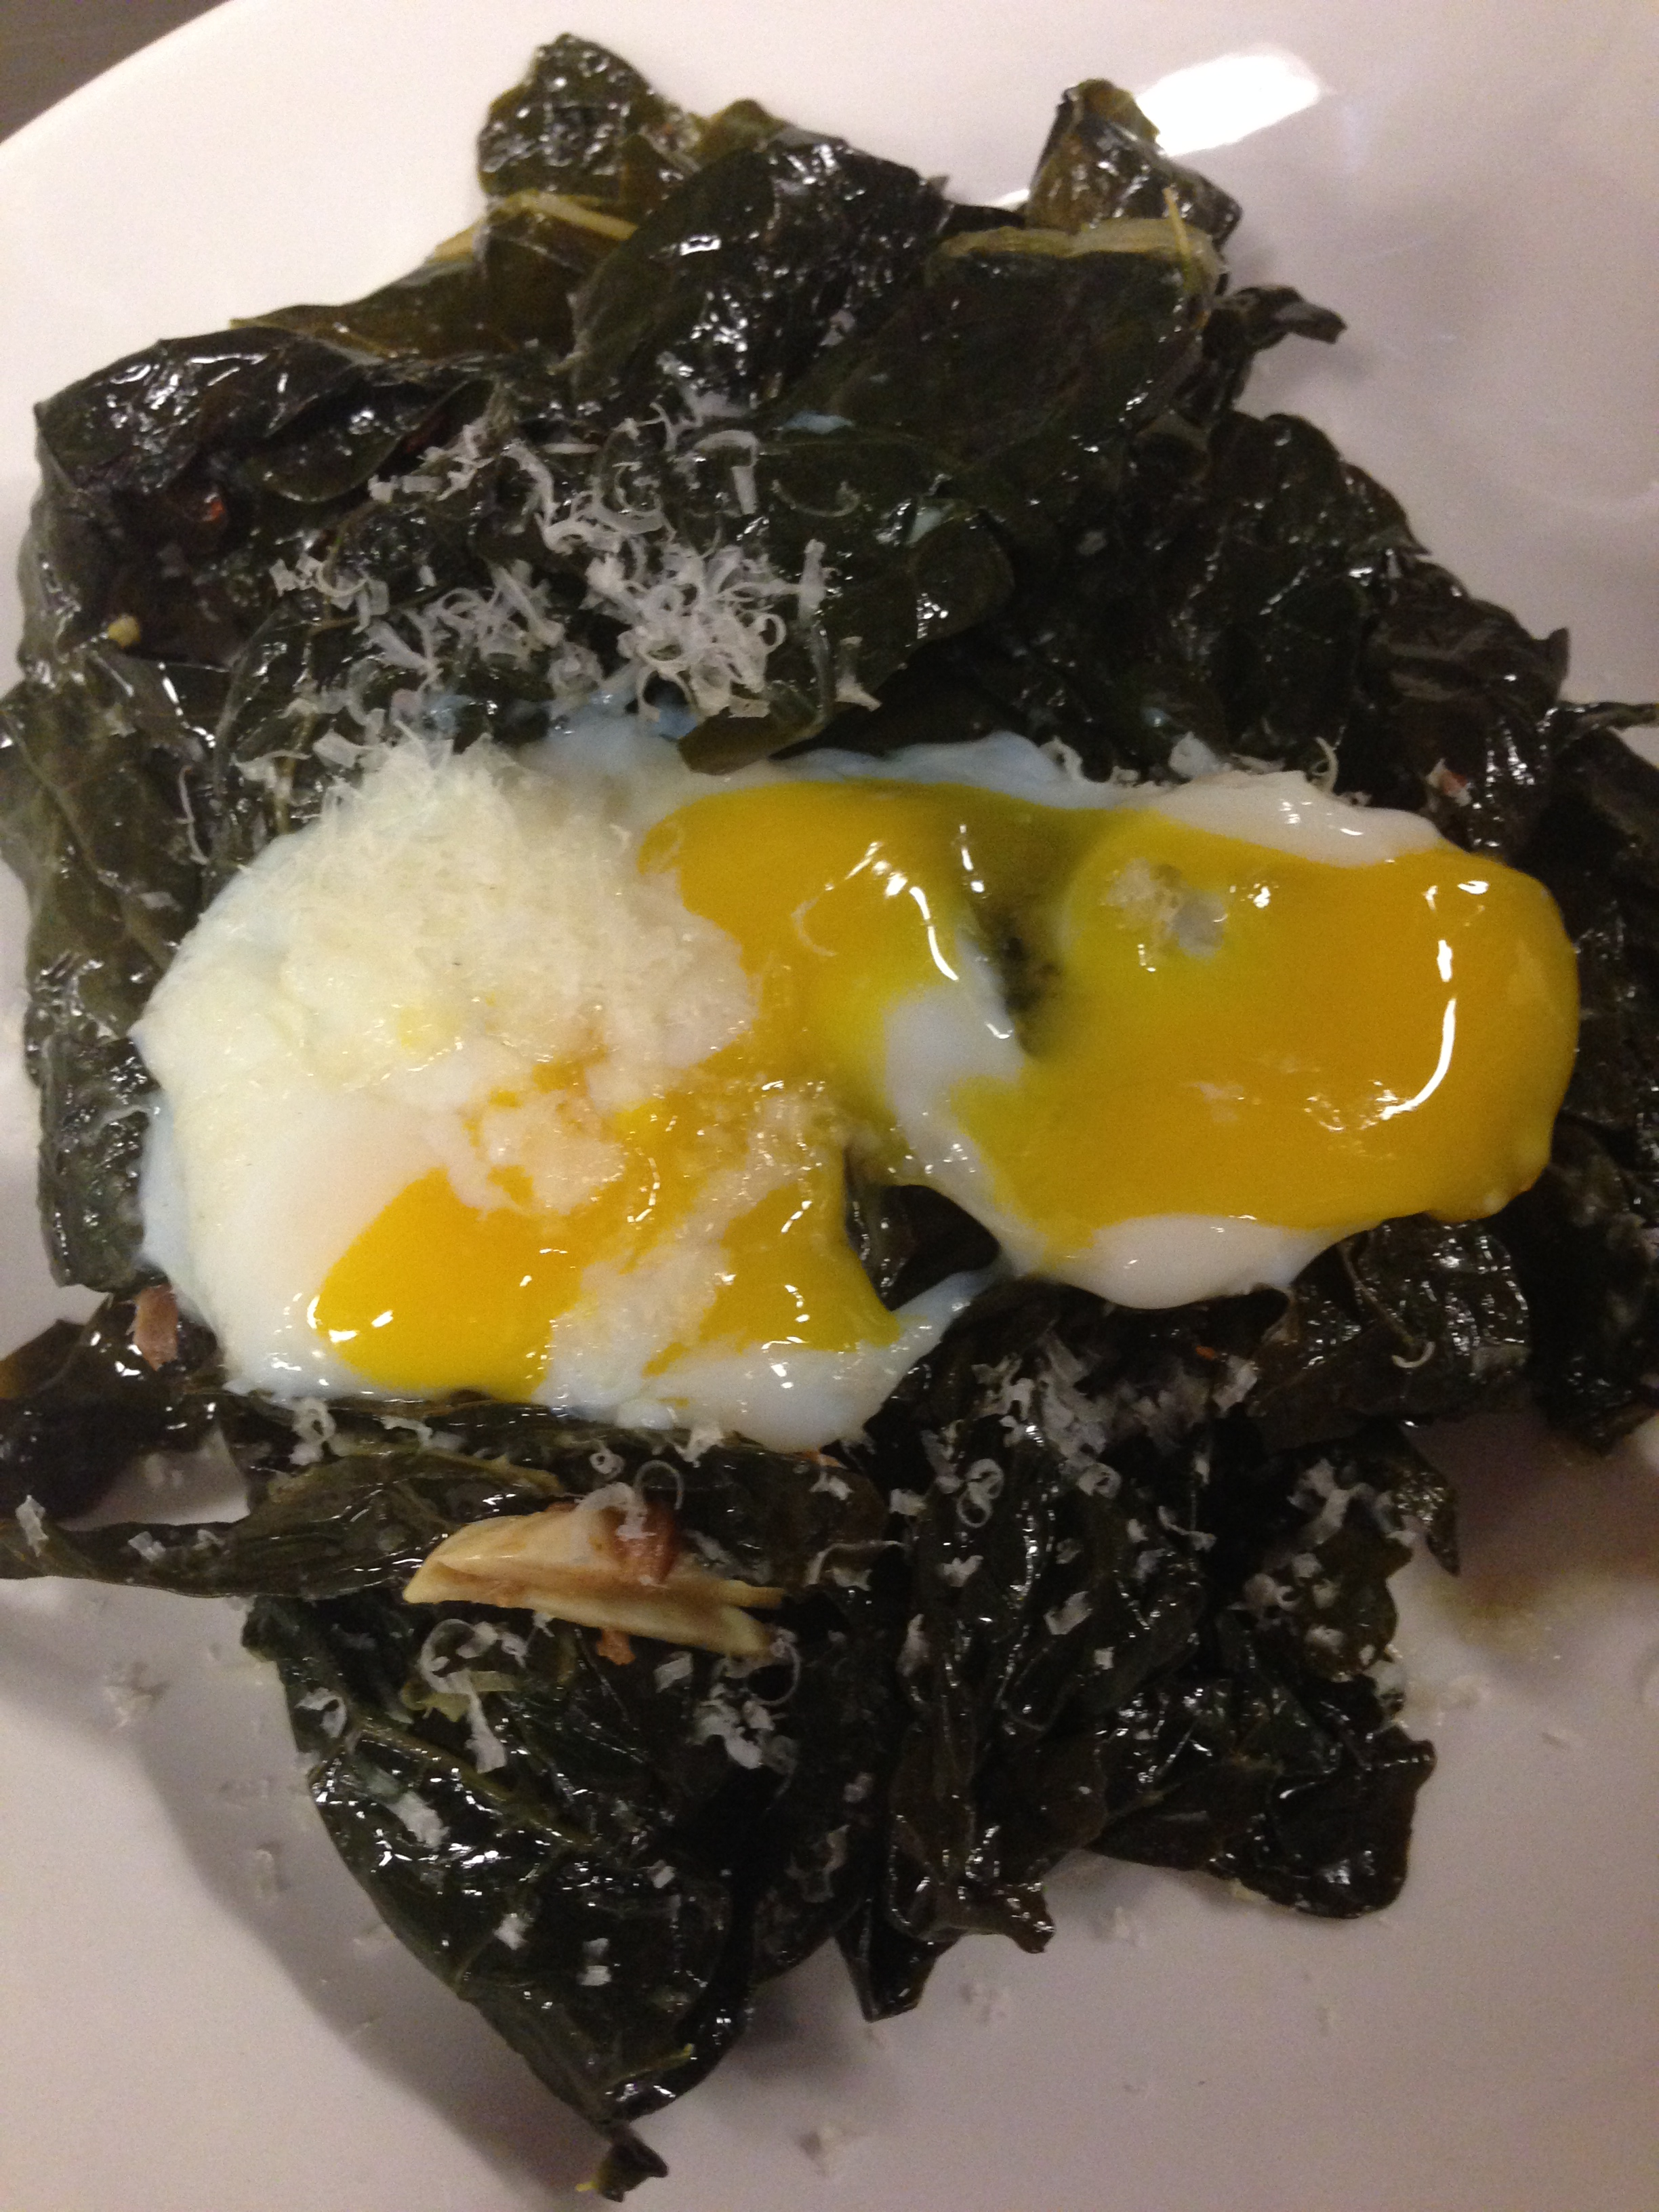 http://chefuniforms.files.wordpress.com/2014/04/kale-bagna-cauda.jpeg